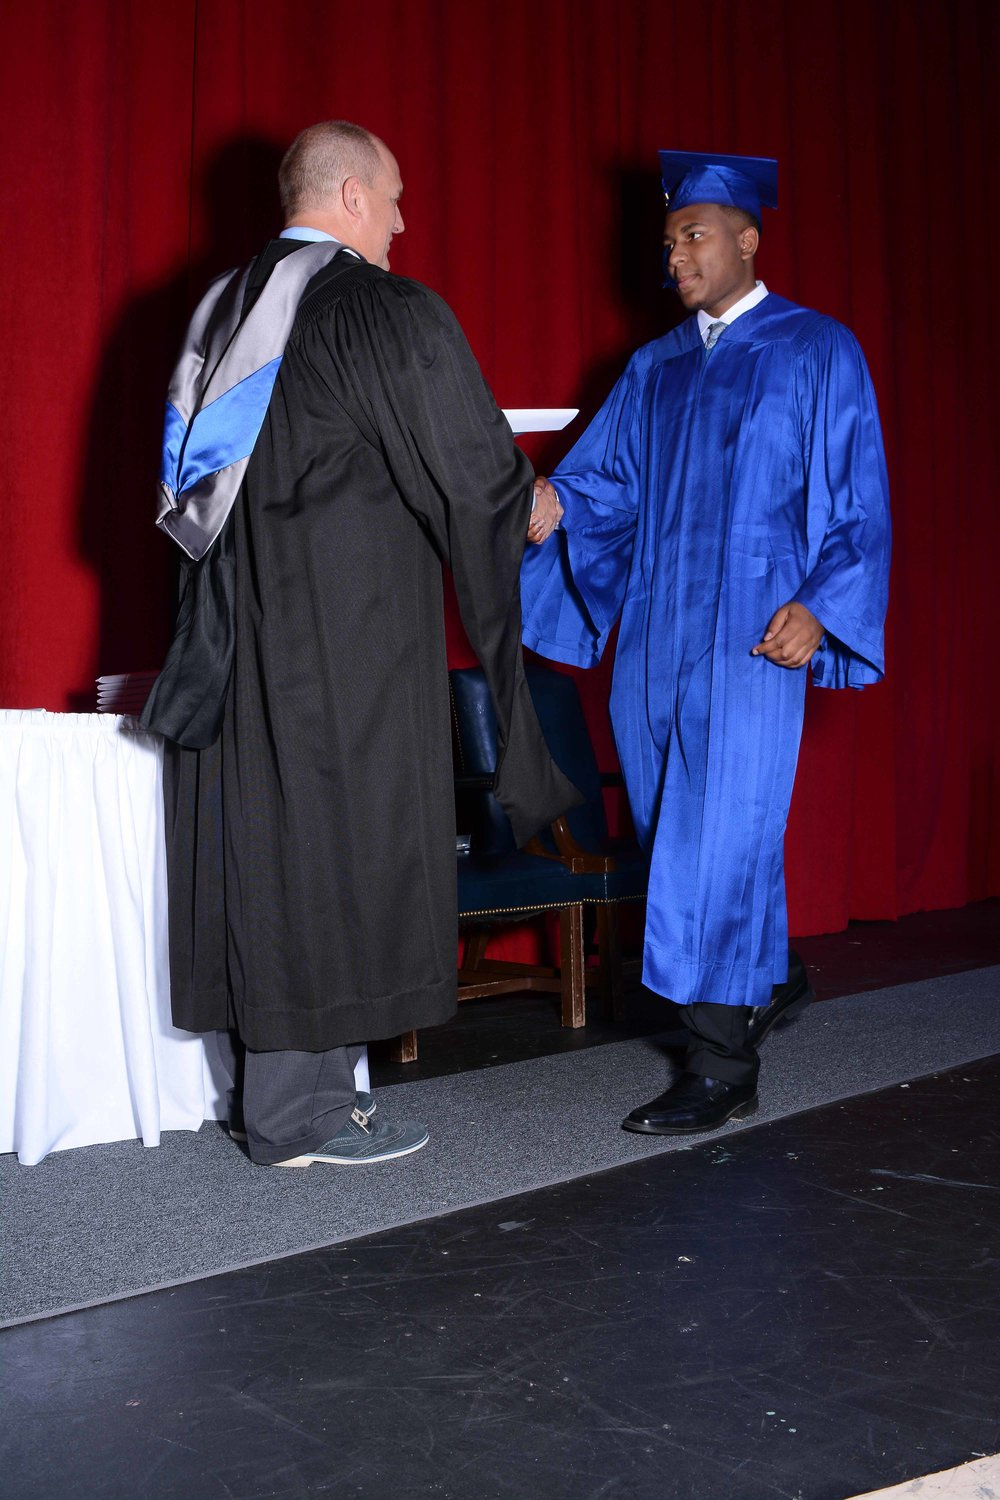 May14 Commencement164.jpg